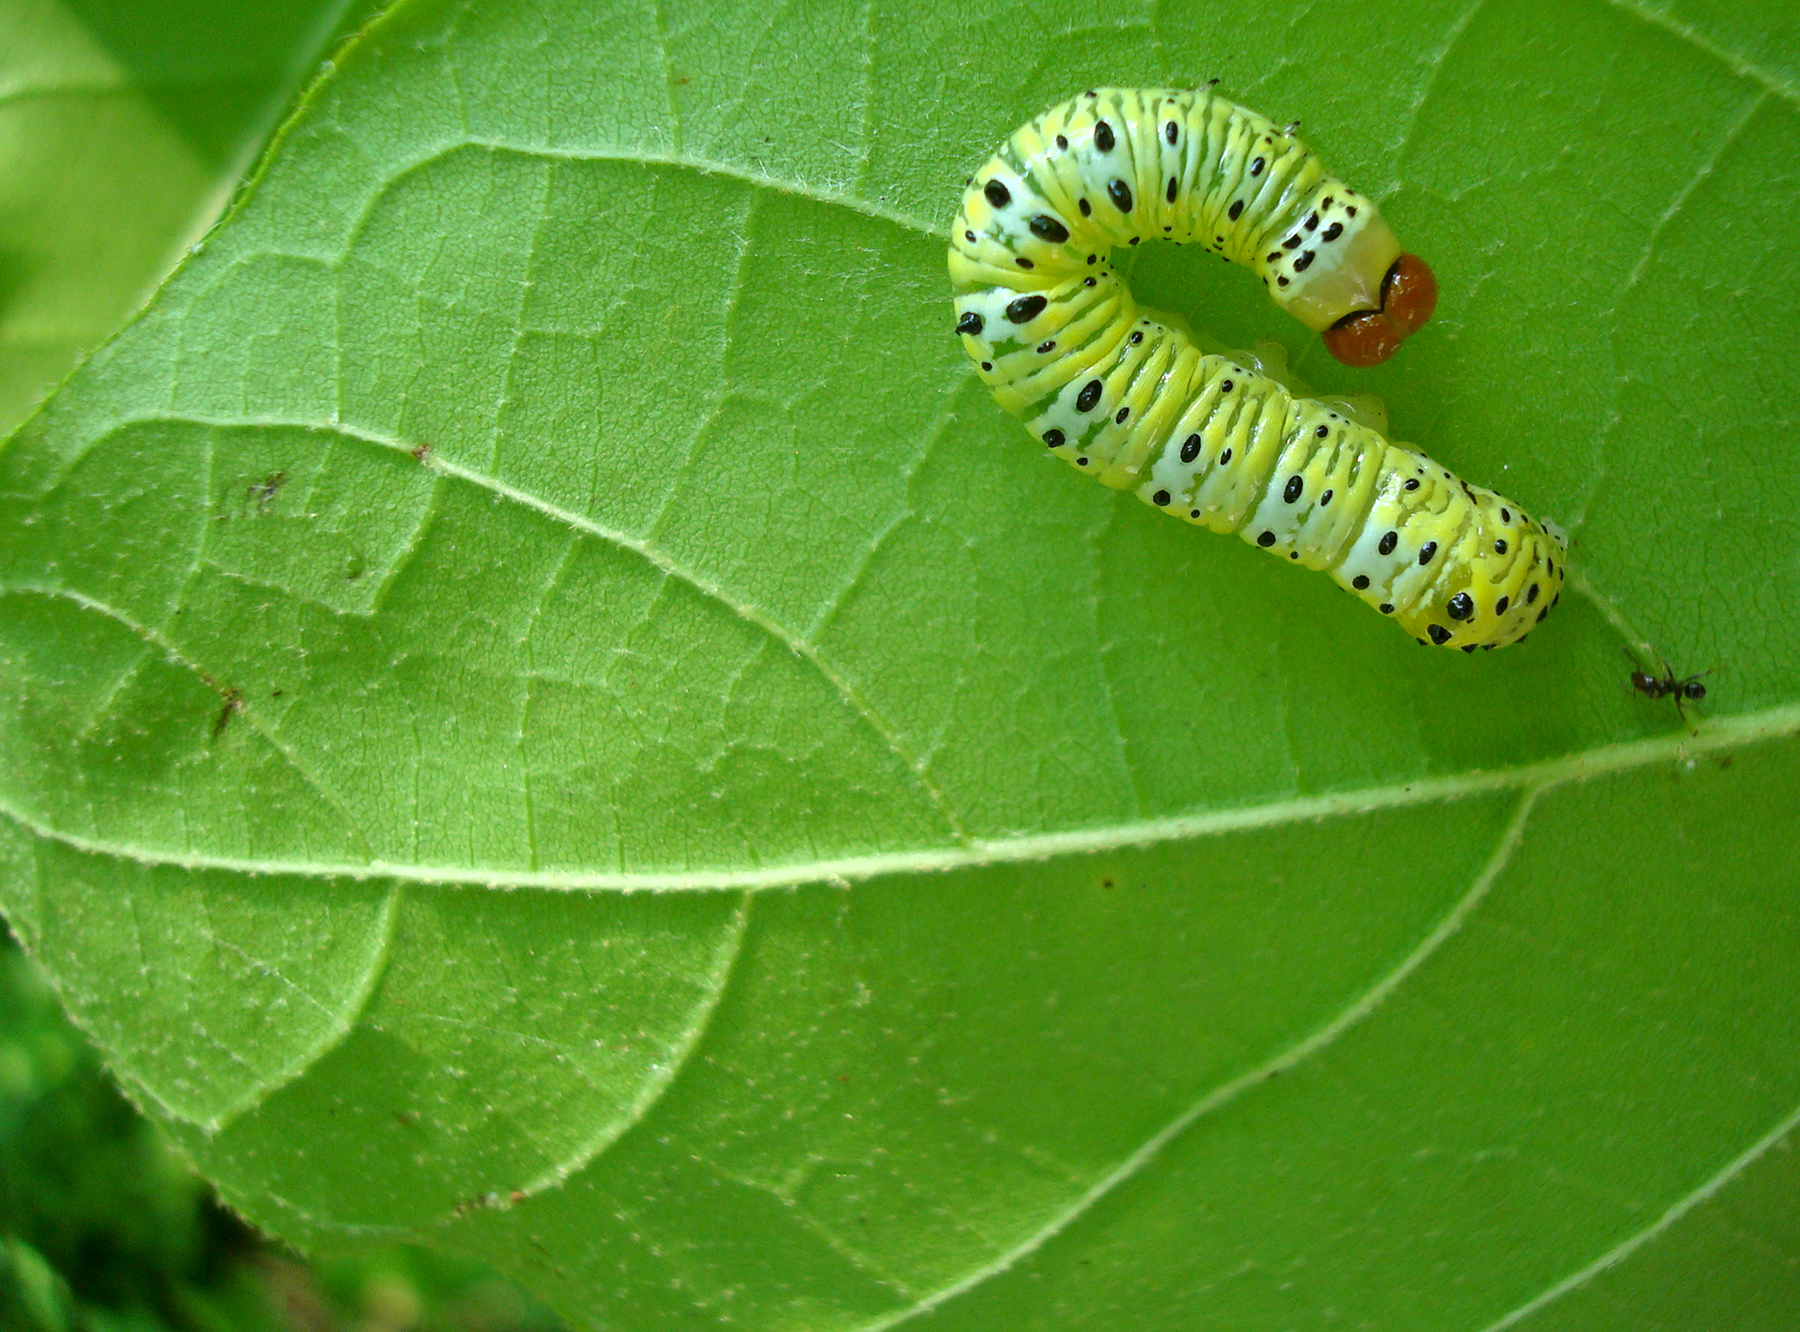 An Azteca ant approaches a caterpillar on an Ecuador laurel leaf in Jalisco, Mexico. Once the ant finds a caterpillar, it recruits nestmates to the leaf, and they bite the caterpillar's underside. Larger ant colonies send more ants to attack such intruders. Together, the ants can chase caterpillars many times their size from the tree. Image credit: Elizabeth G. Pringle